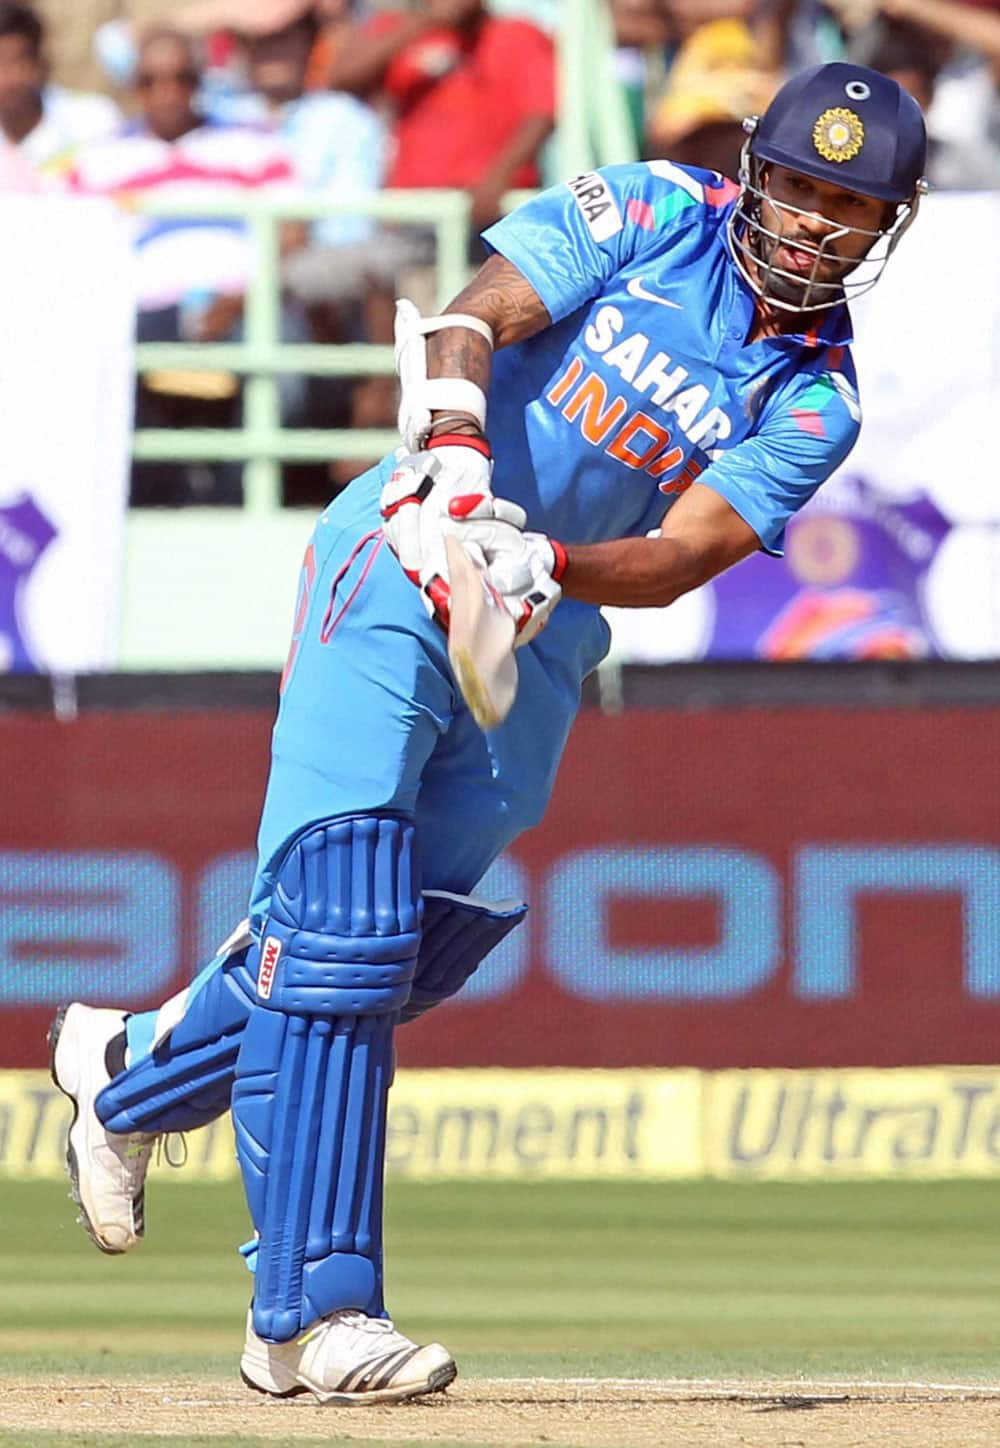 Indian Cricketer S Dhawan plays a shot during India vs West Indies 2nd ODI Match in Visakhapatnam.